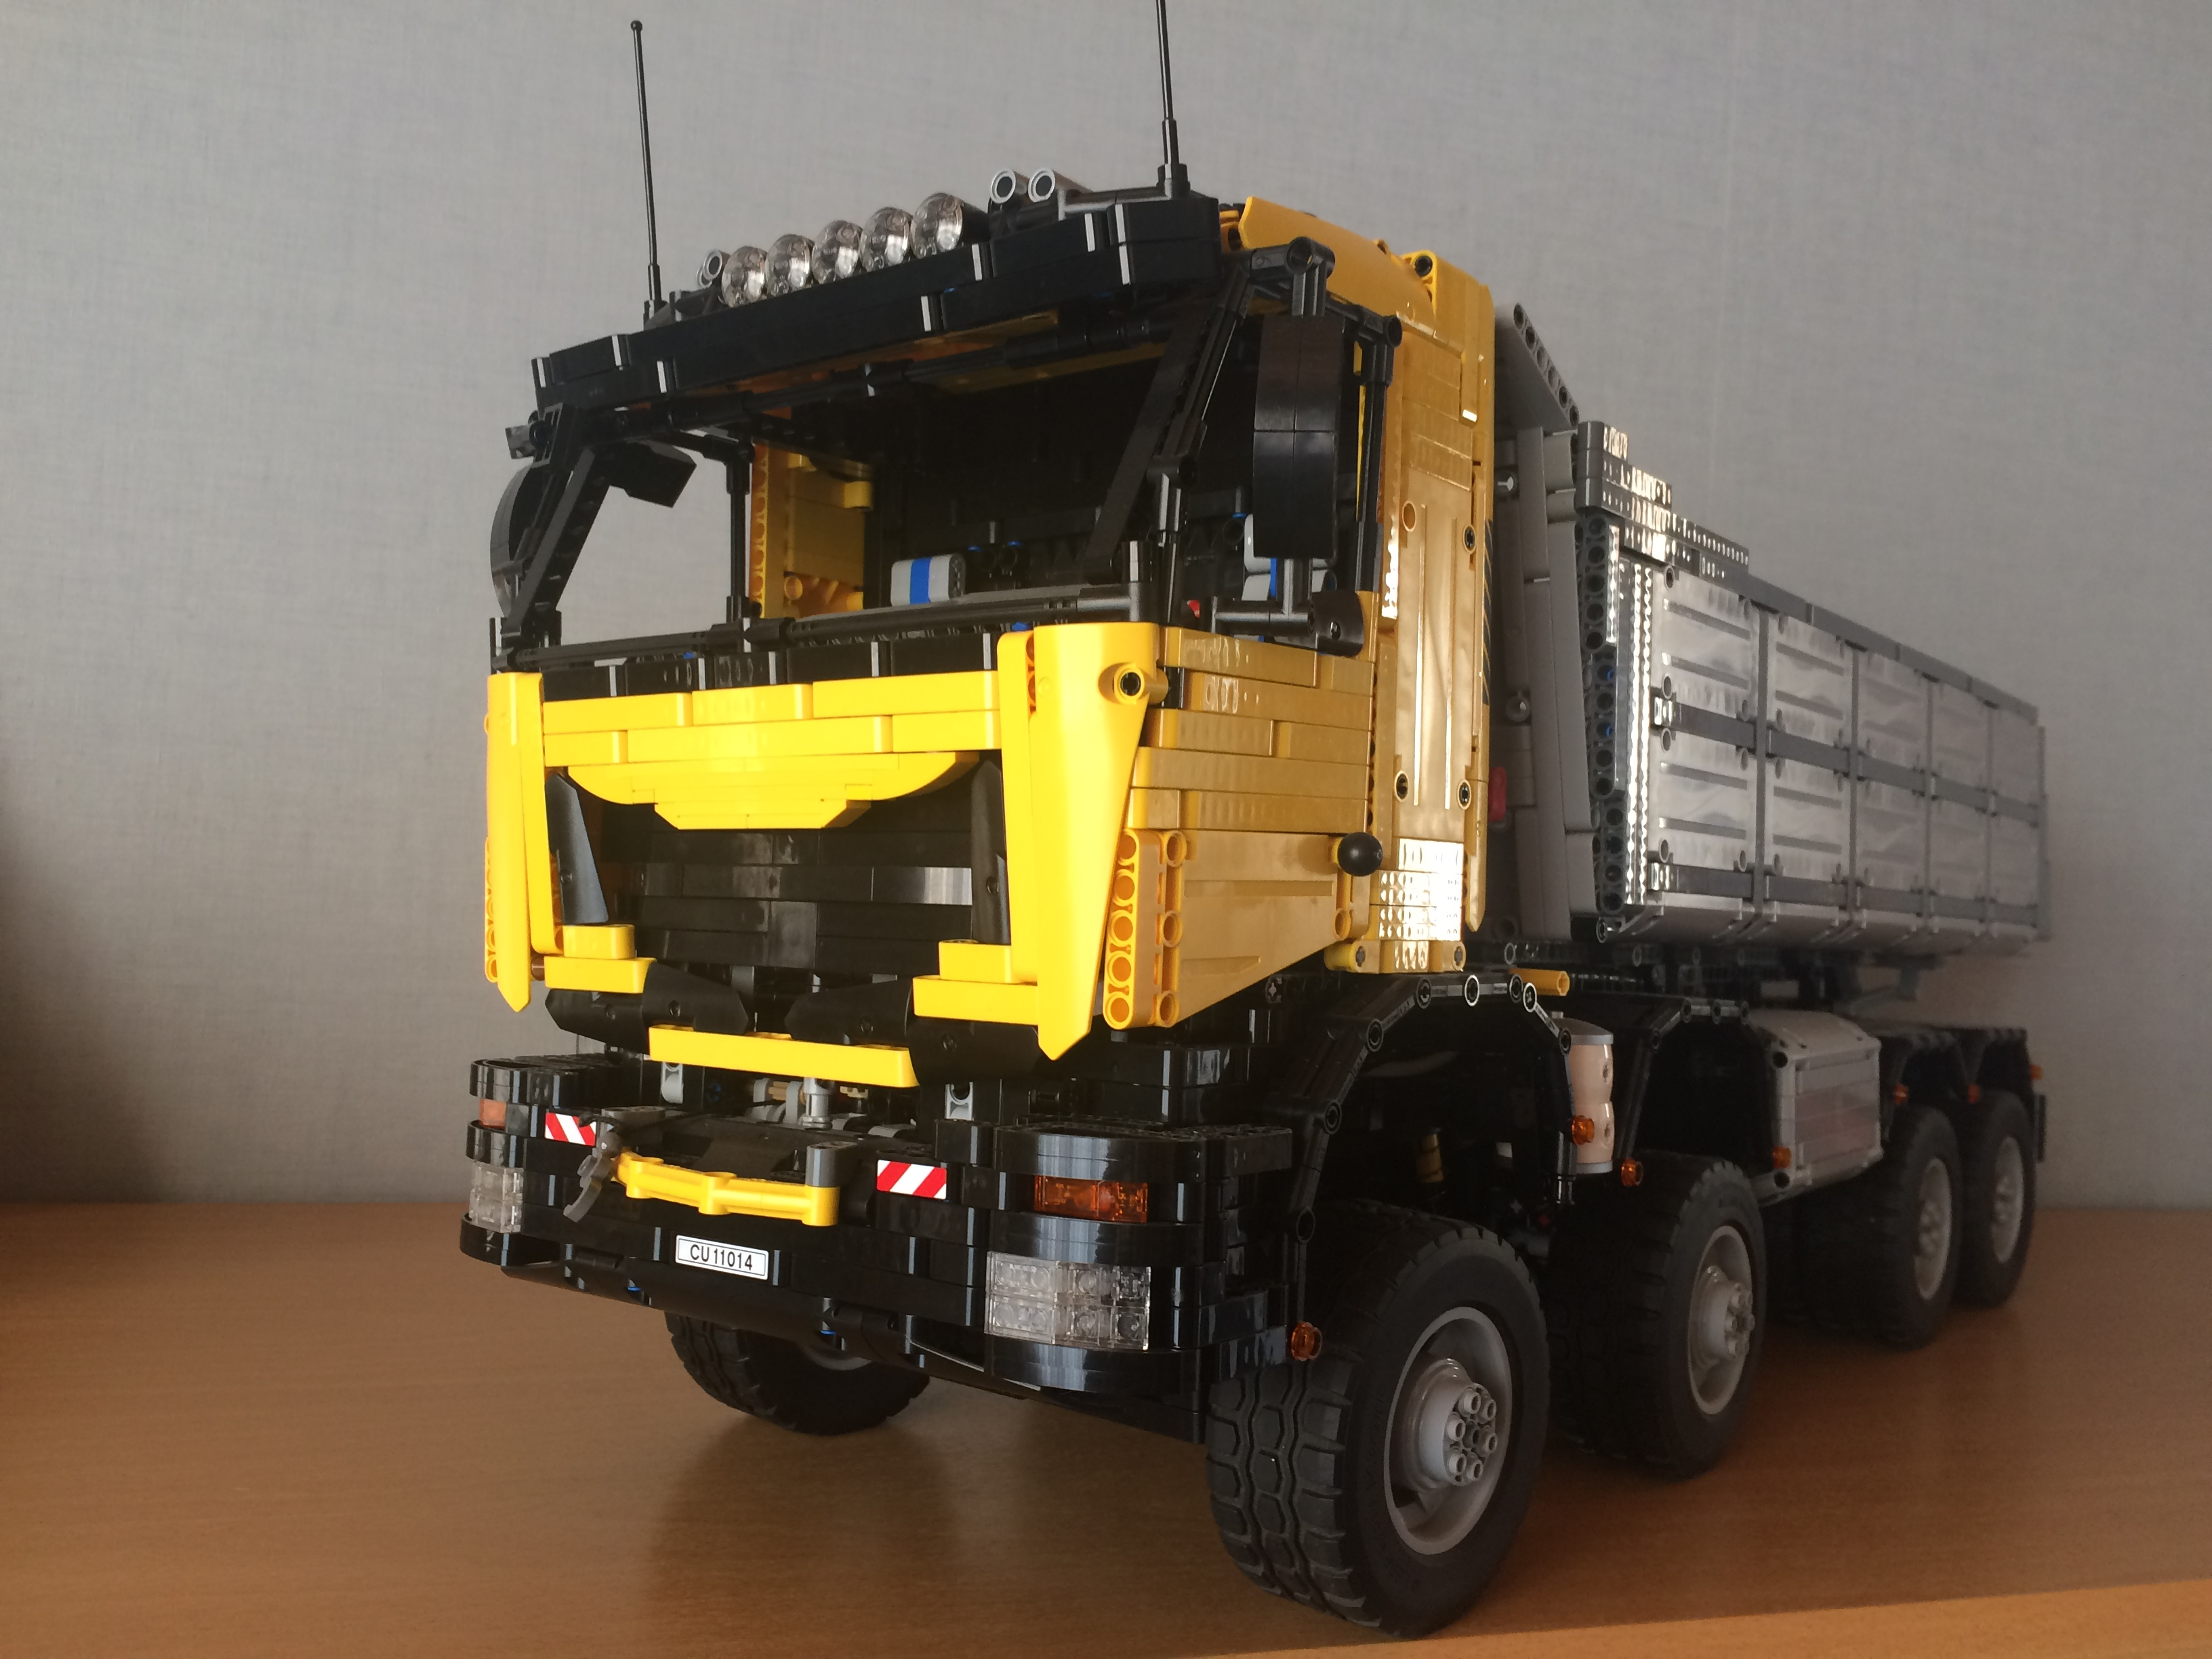 Lego Technic Garbage Truck Instructions Garbage Image And Foto